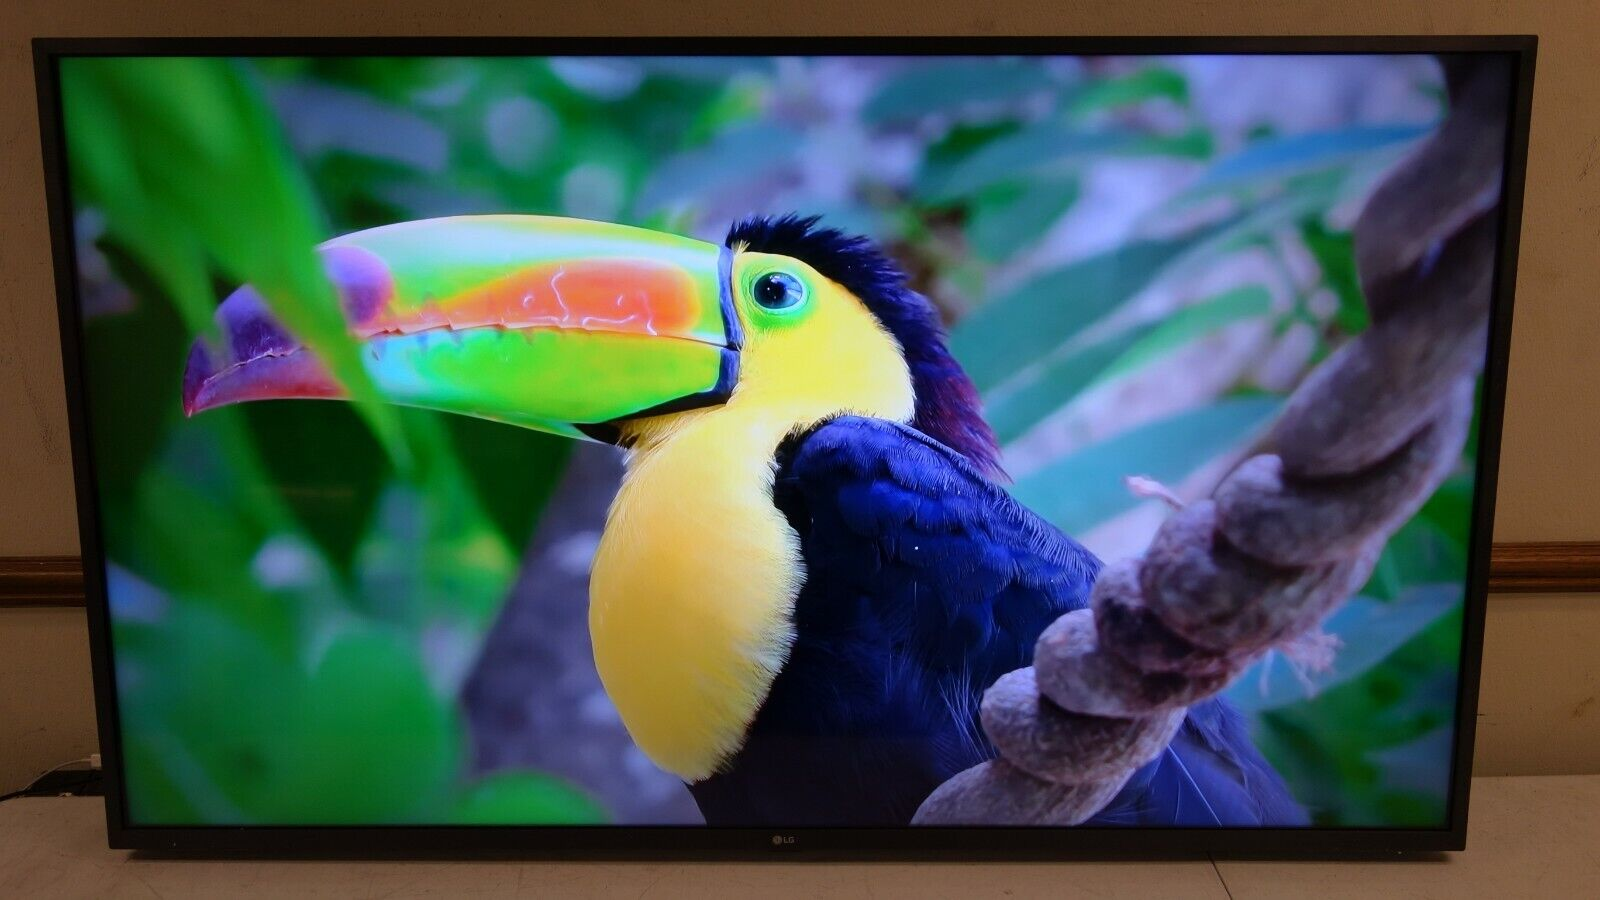 LG - 55 Class UN7300 Series LED 4K UHD Smart webOS TV. Available Now for 339.99